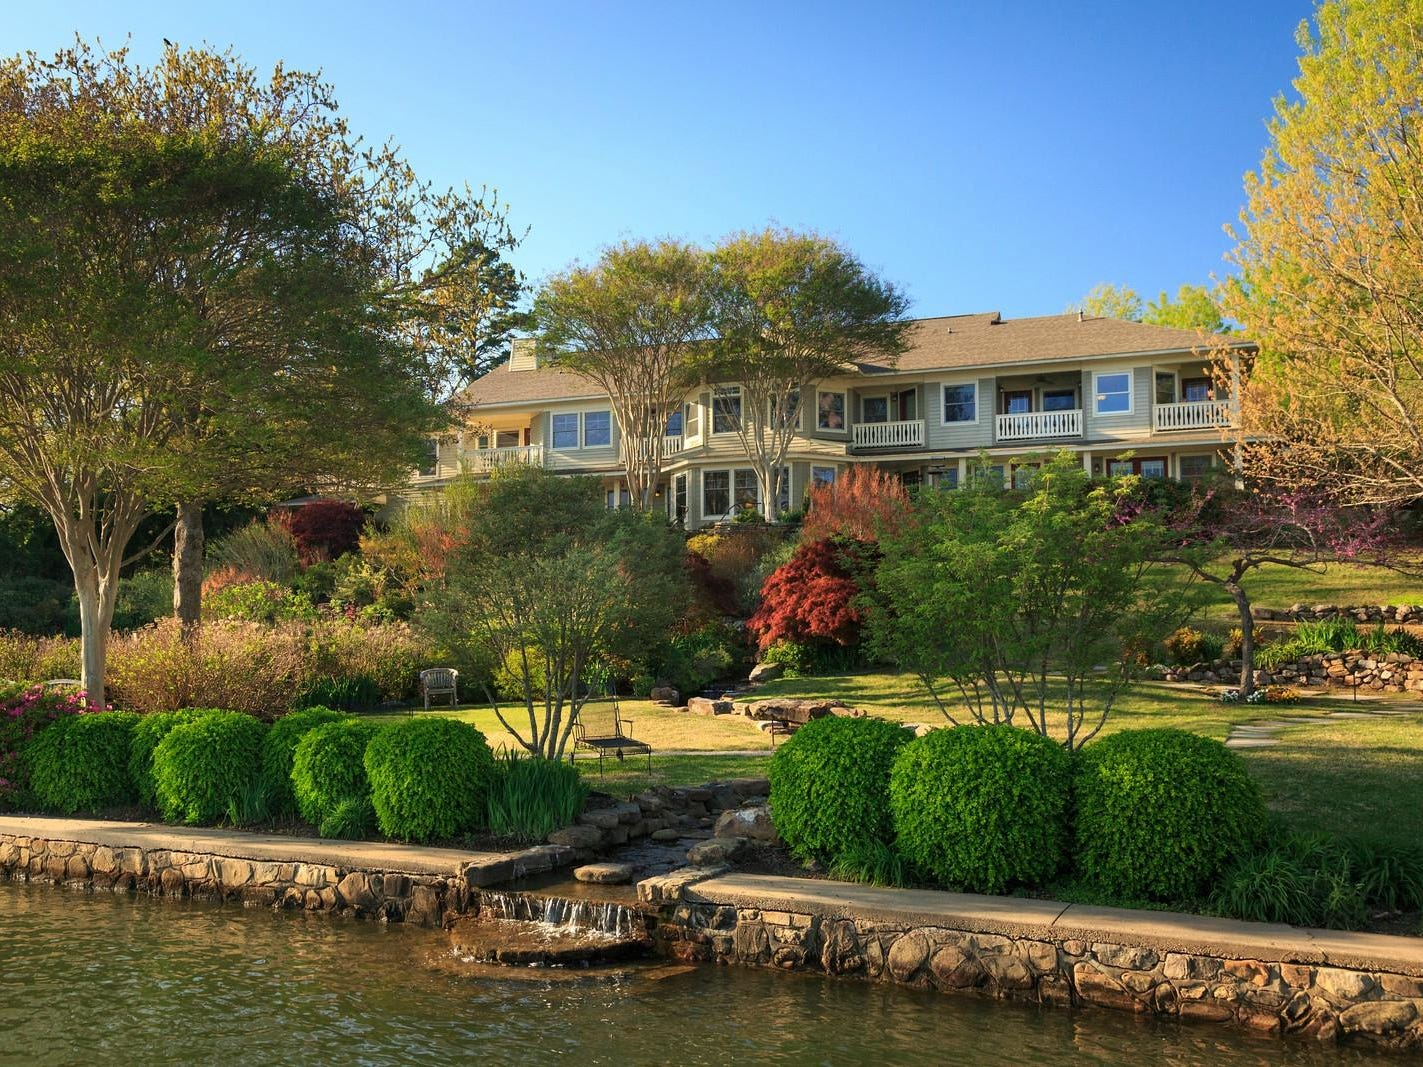 No. 6: Lookout Point Lakeside Inn in Hot Springs, Arkansas.